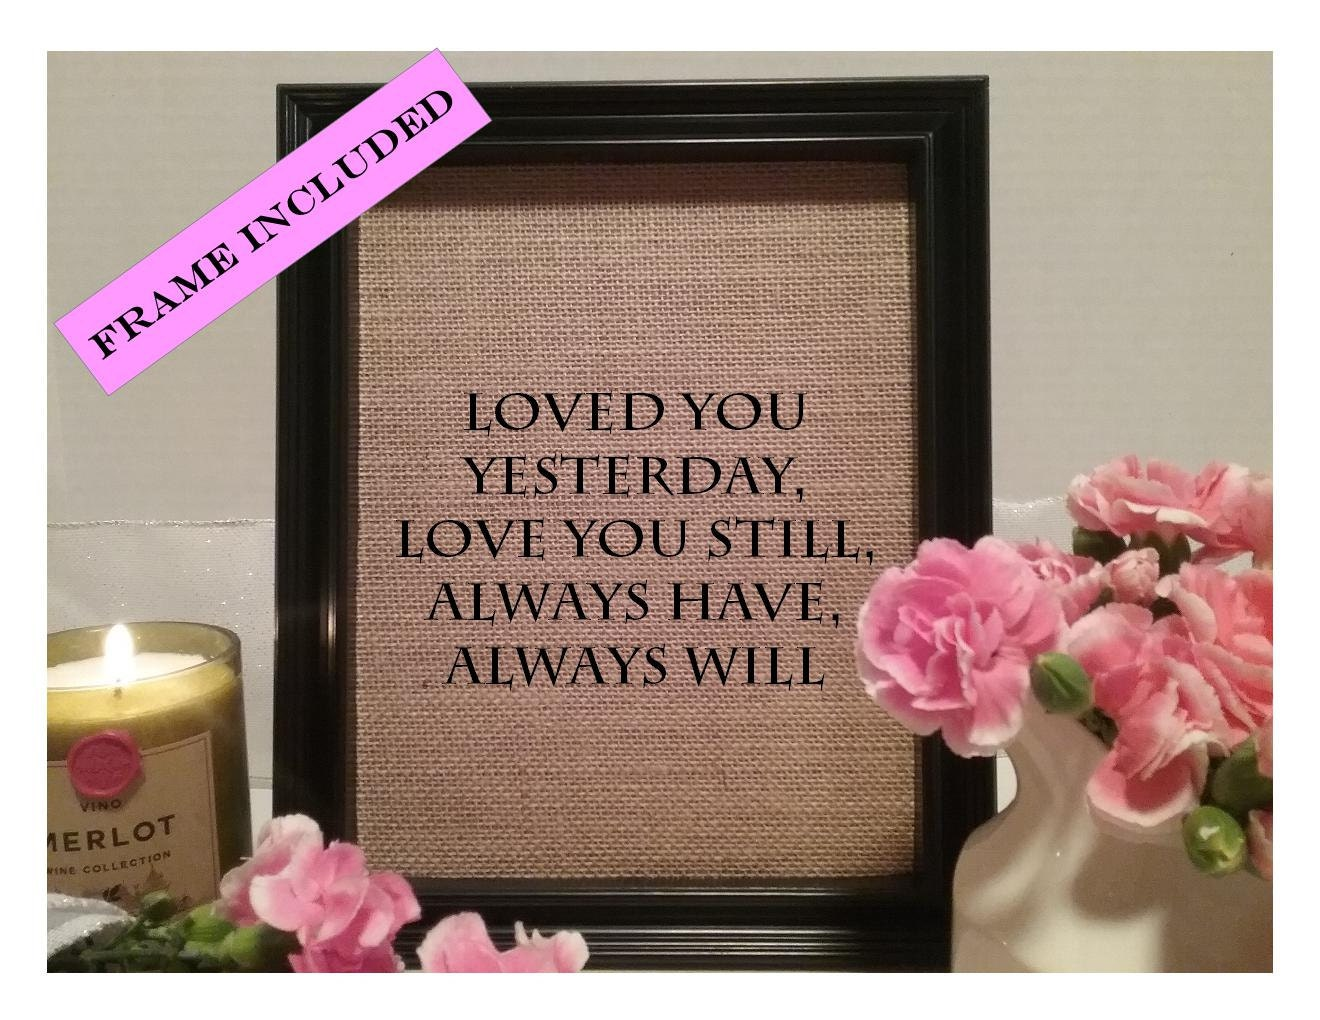 Loved You Yesterday Love You Still Quote: FRAMED Loved You Yesterday Love You Still Always Have